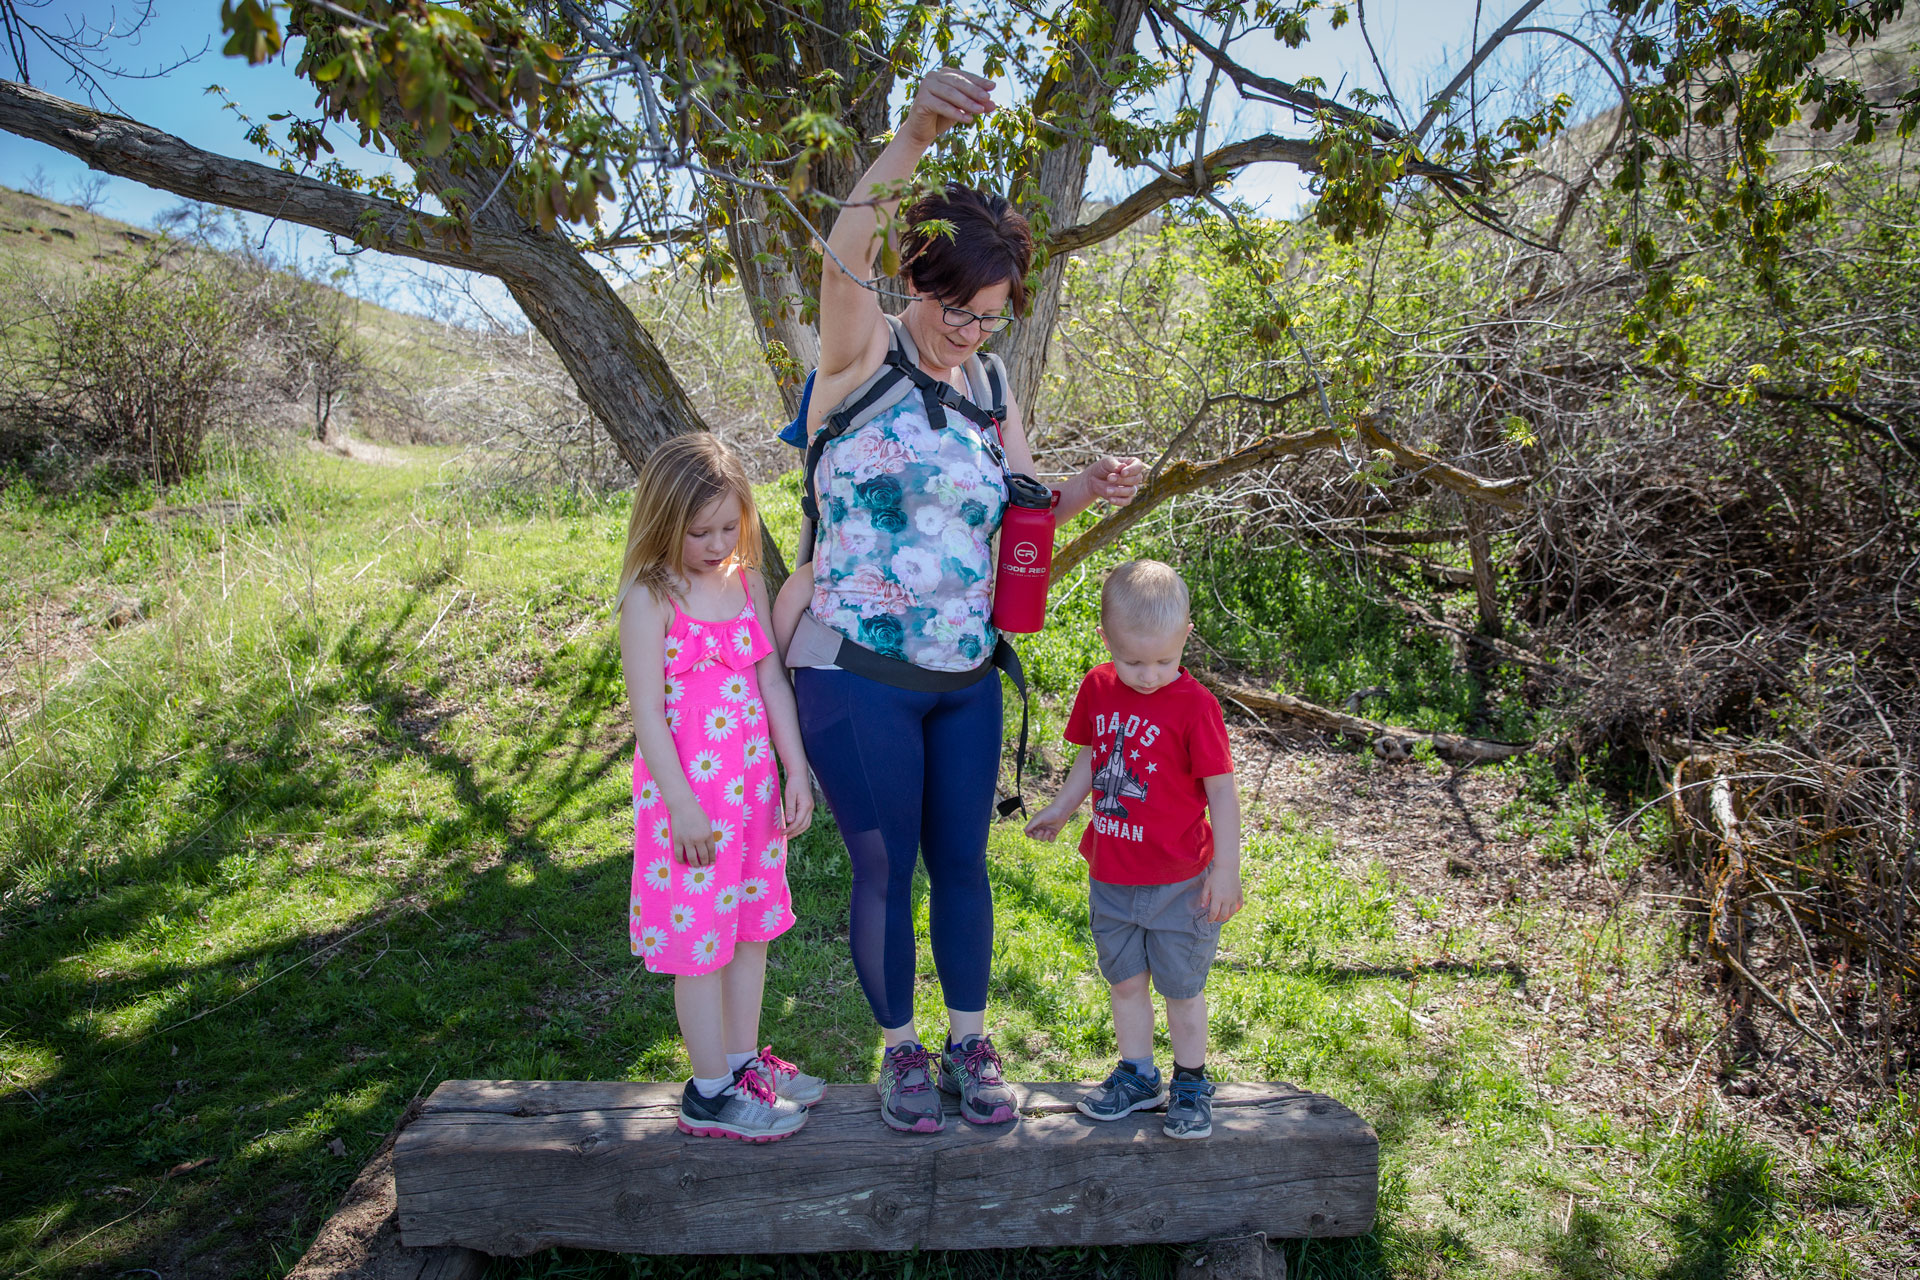 Mom and kids standing on bench while dropping a leaf fro a tree to see what it will do